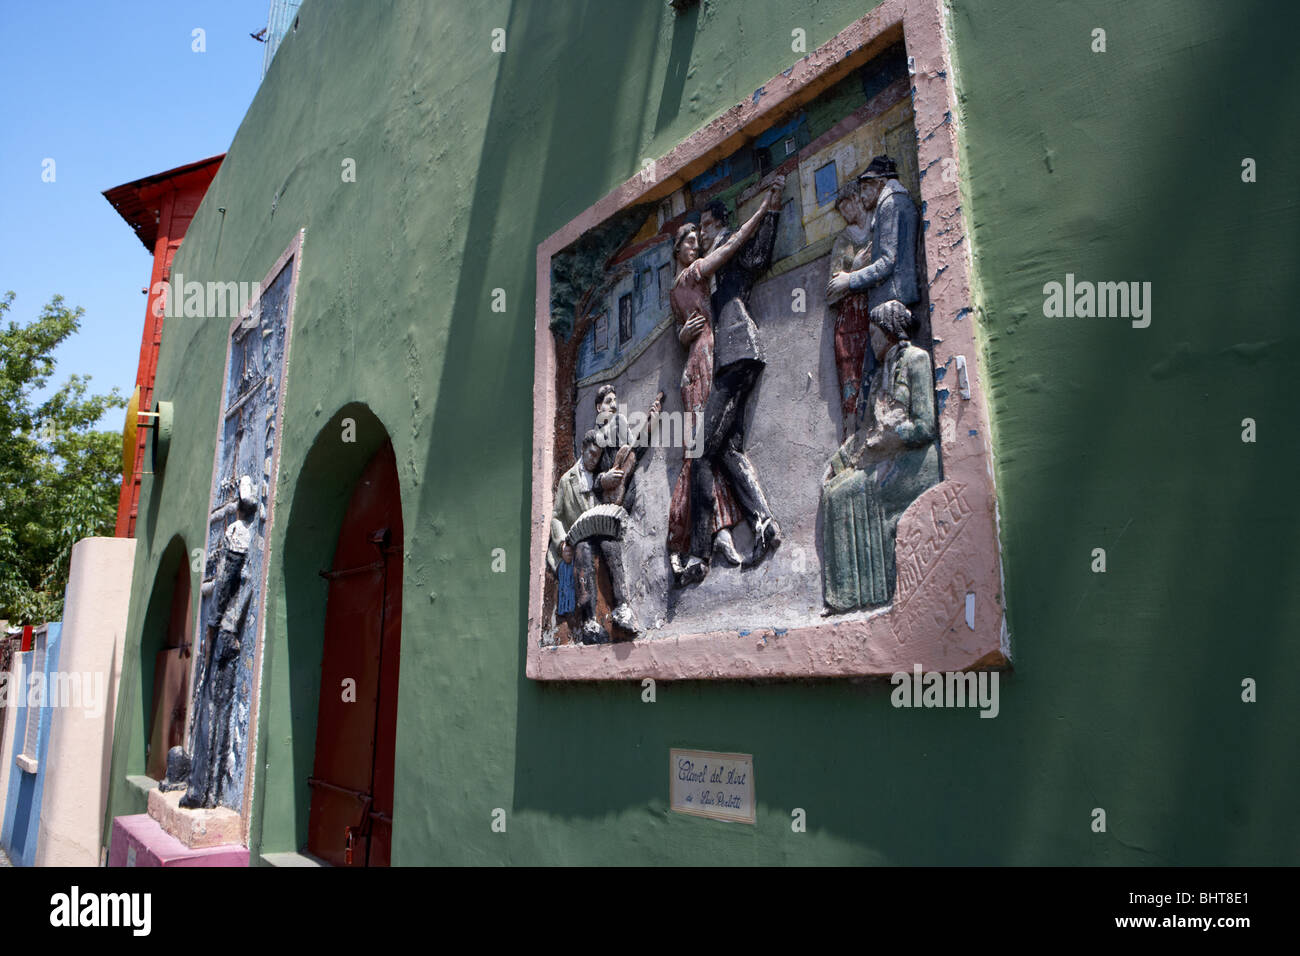 wall mural depicting the tango in caminito street la boca capital federal buenos aires republic of argentina south - Stock Image